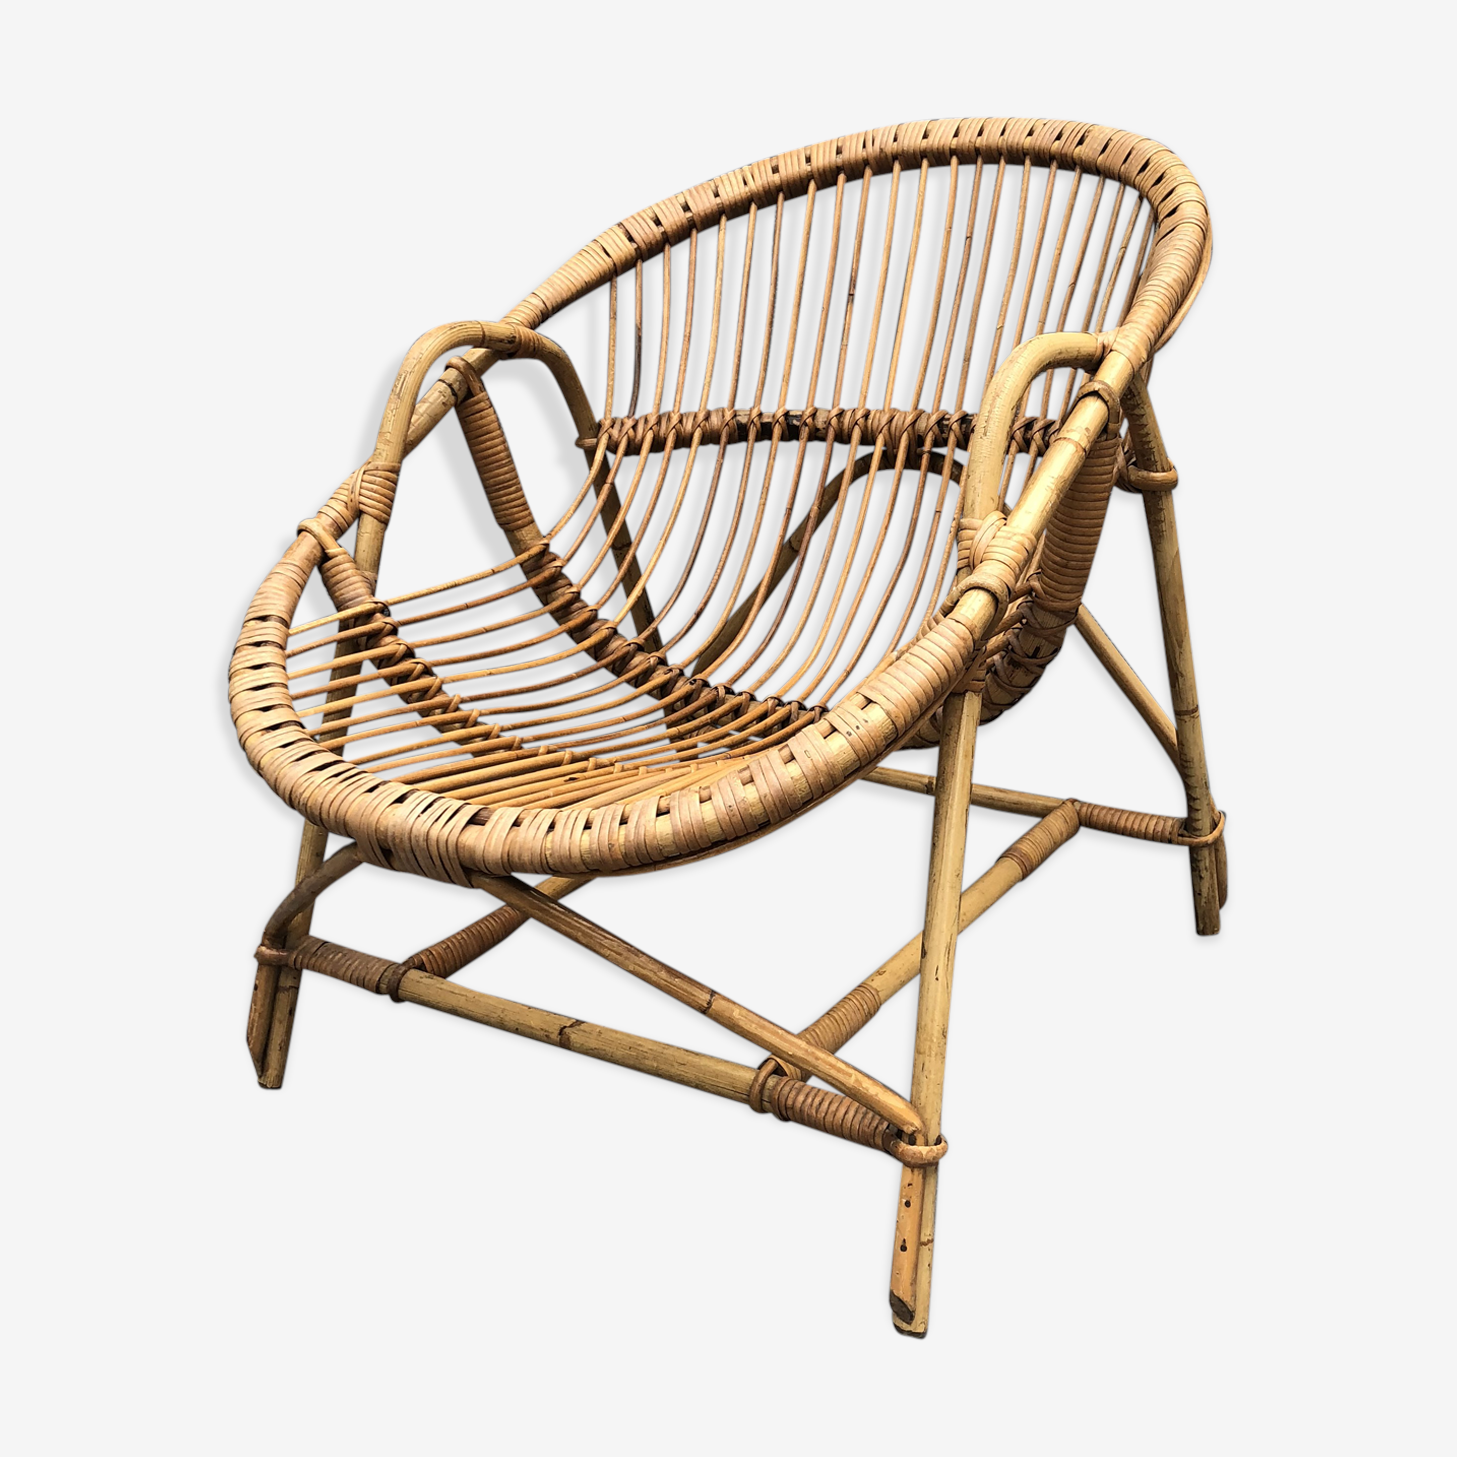 Shell vintage rattan chair